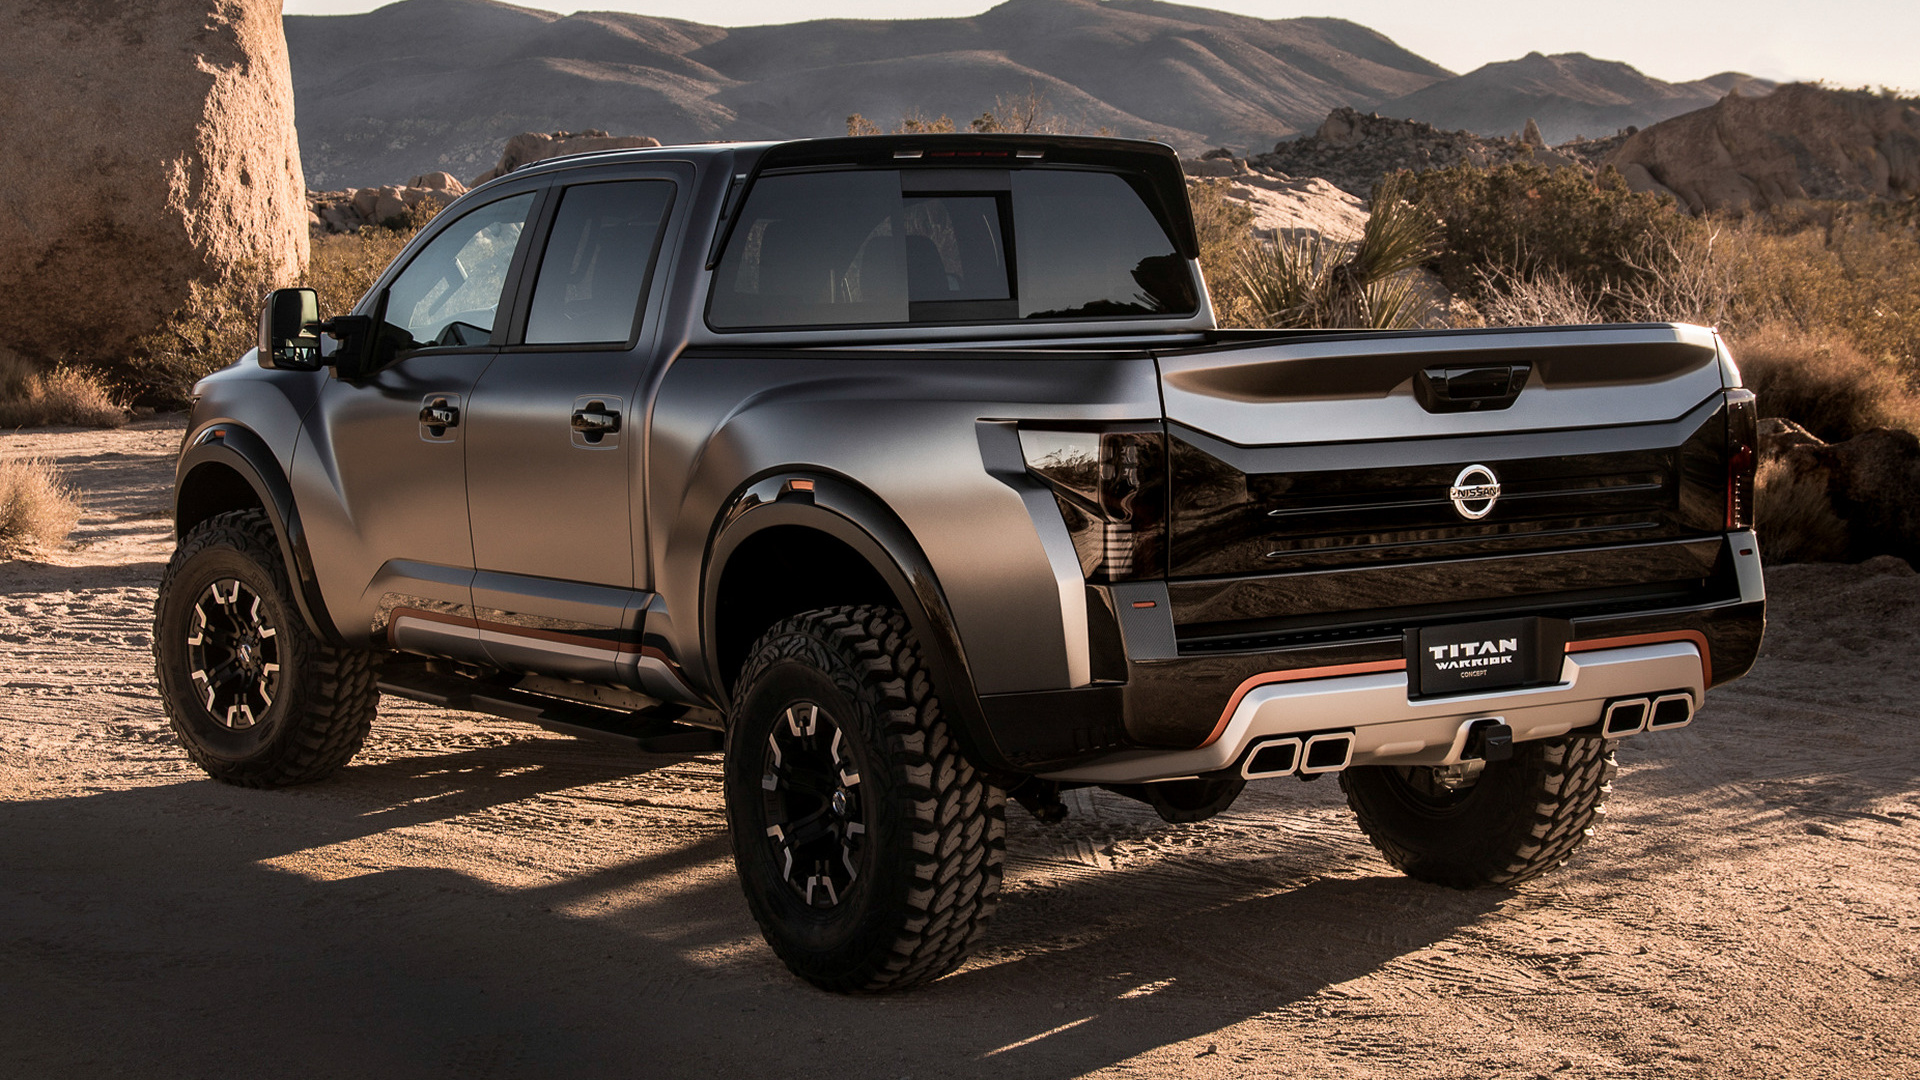 Nissan Titan Warrior Concept (2016) Wallpapers and HD ...